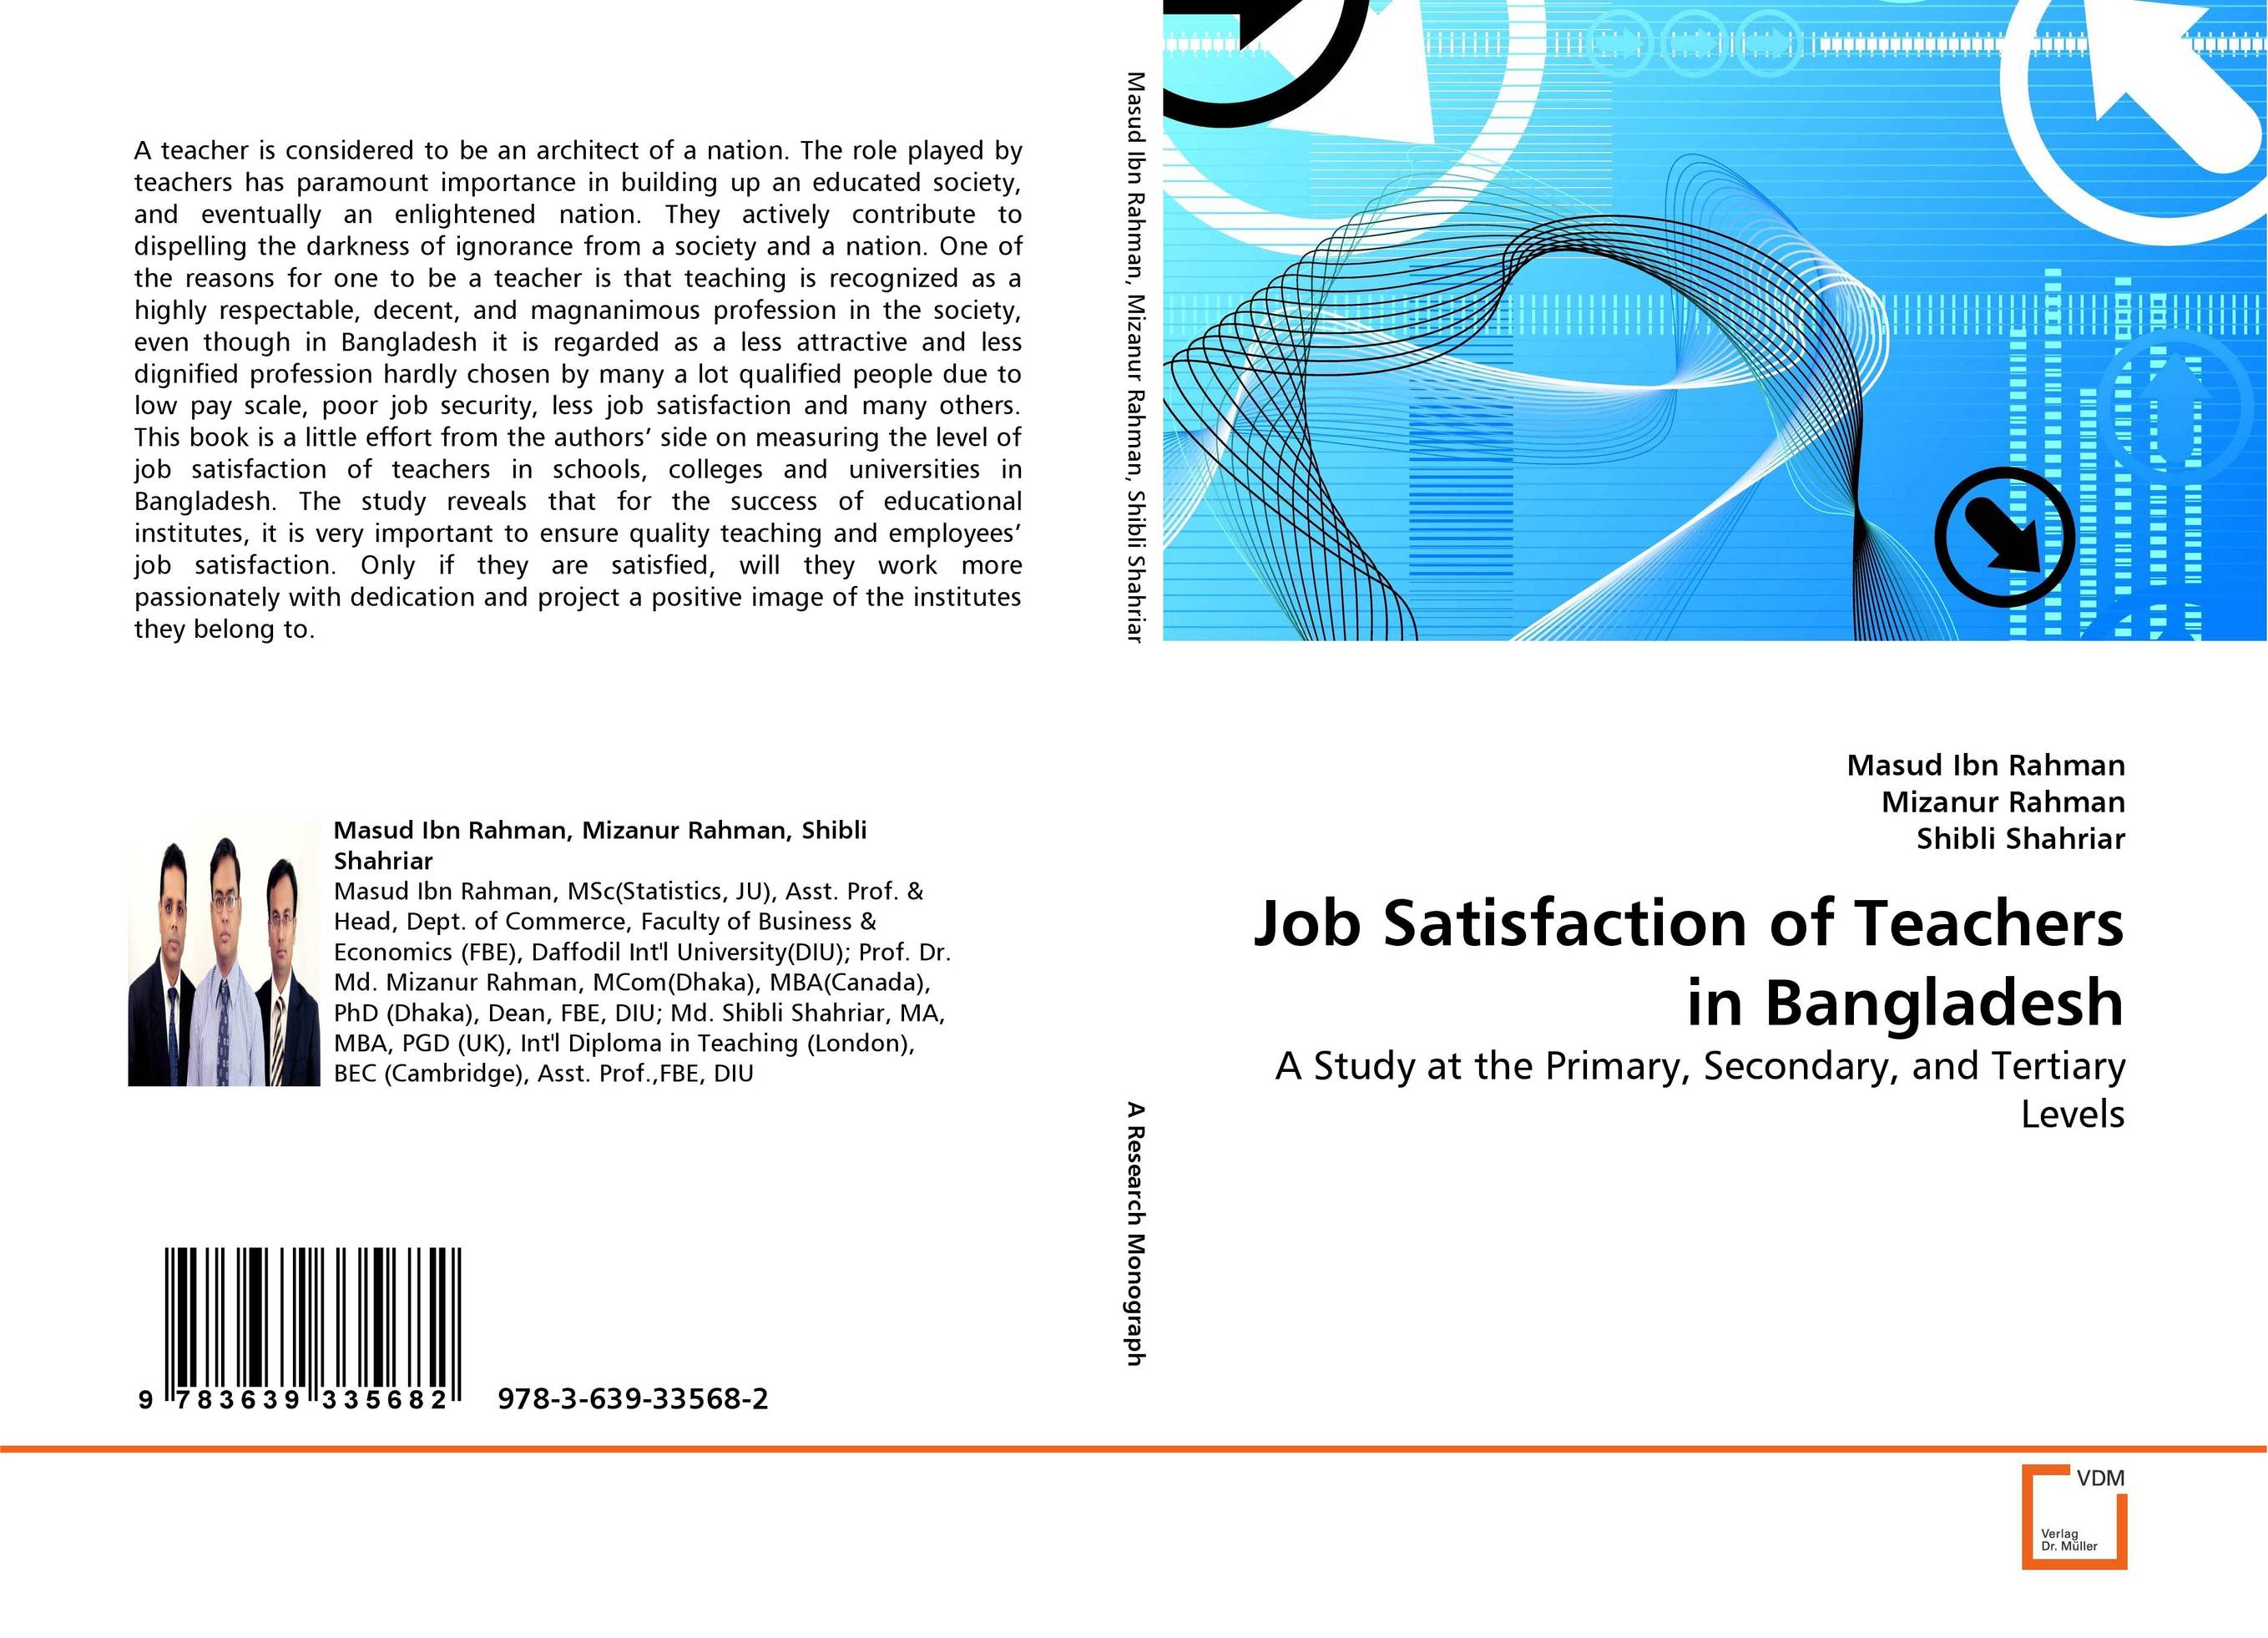 Job Satisfaction of Teachers in Bangladesh a little less talk and a lot more action